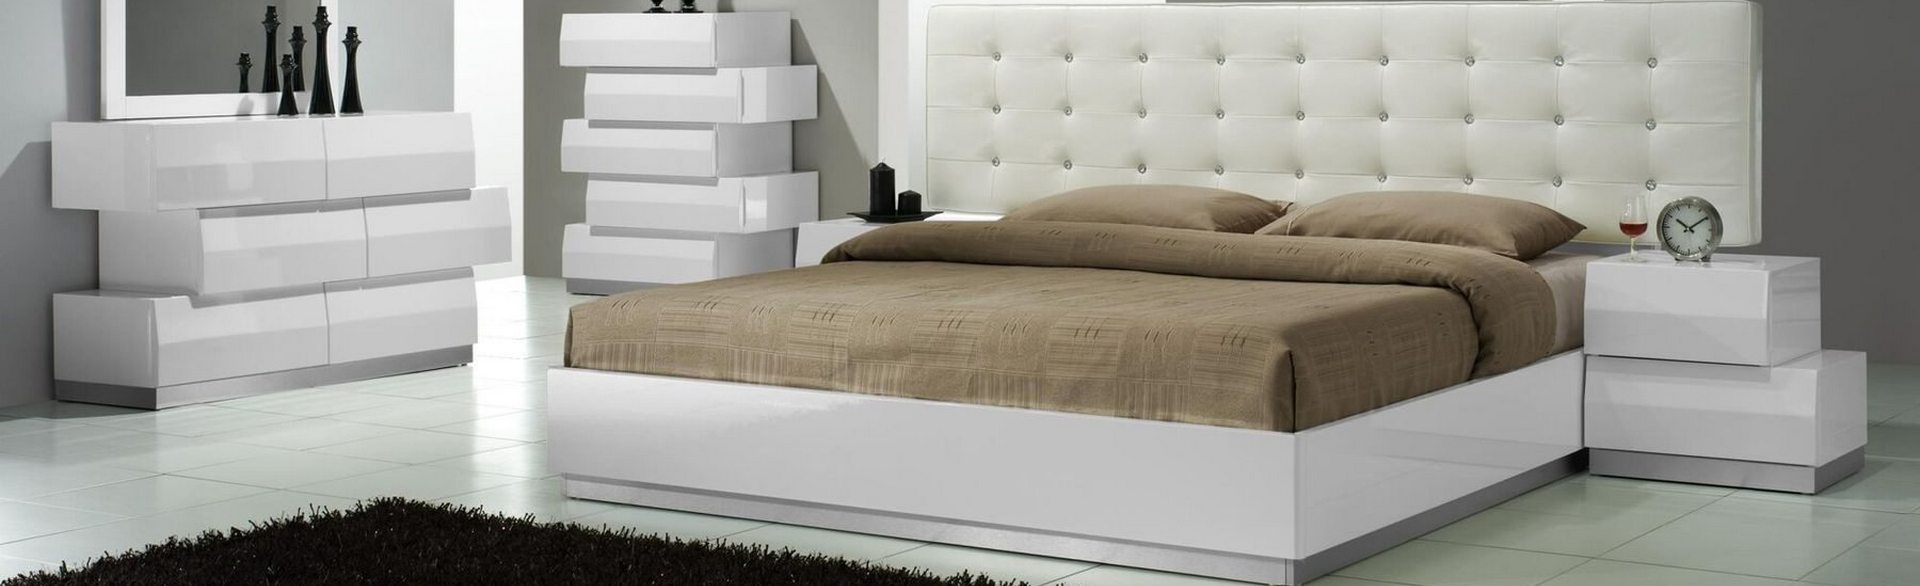 Best Mattresses for Platform Bed